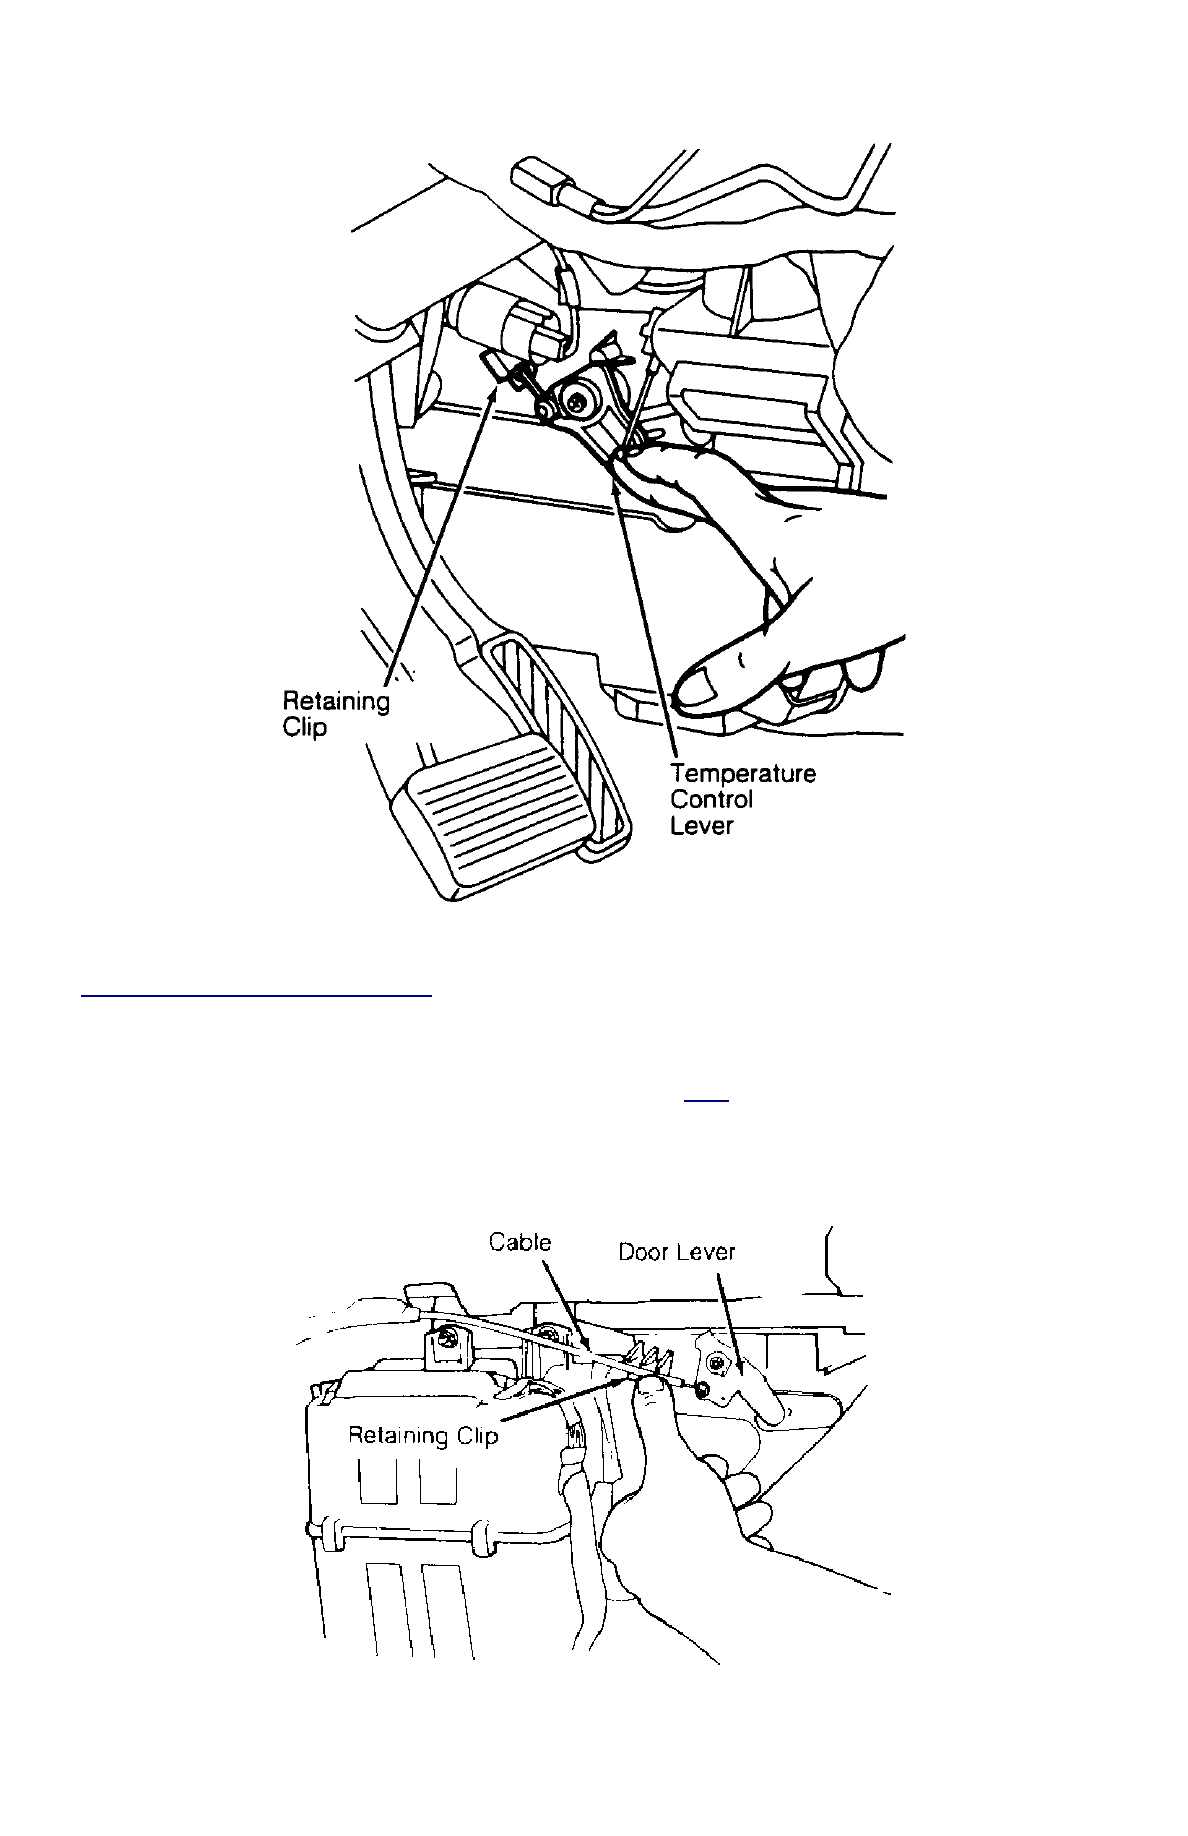 Ford Festiva Instruction Part 88 Wiring Diagram For 1988 Fig 4 Adjusting Temperature Control Cable